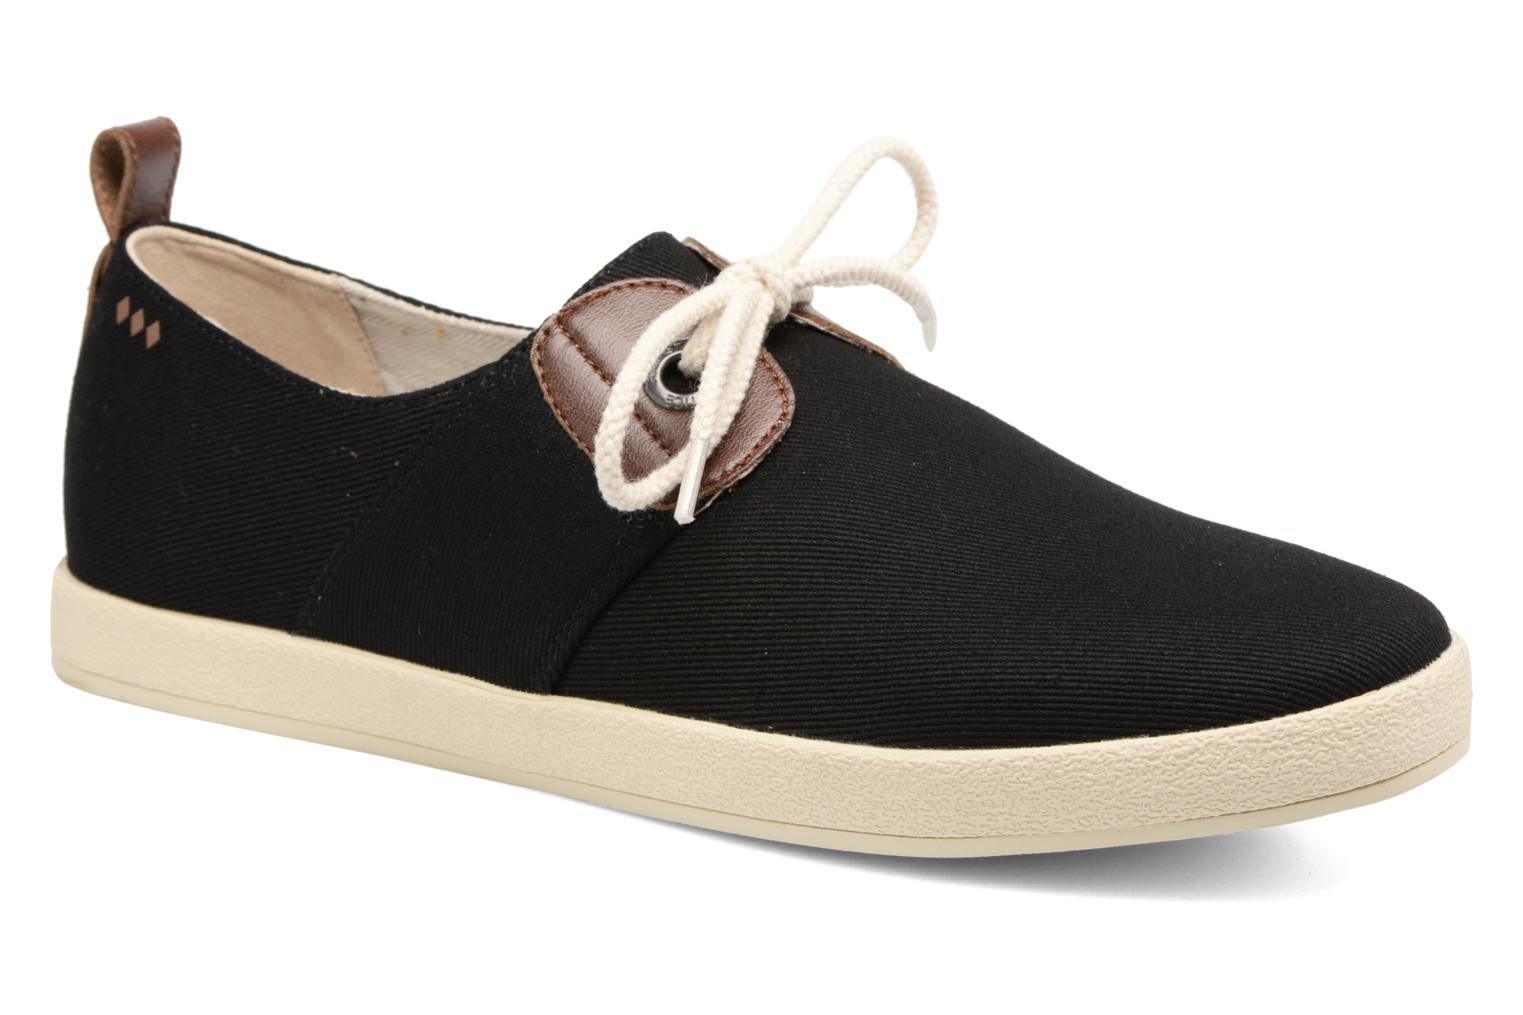 Marques Chaussure homme Armistice homme Cargo one Canvas Black